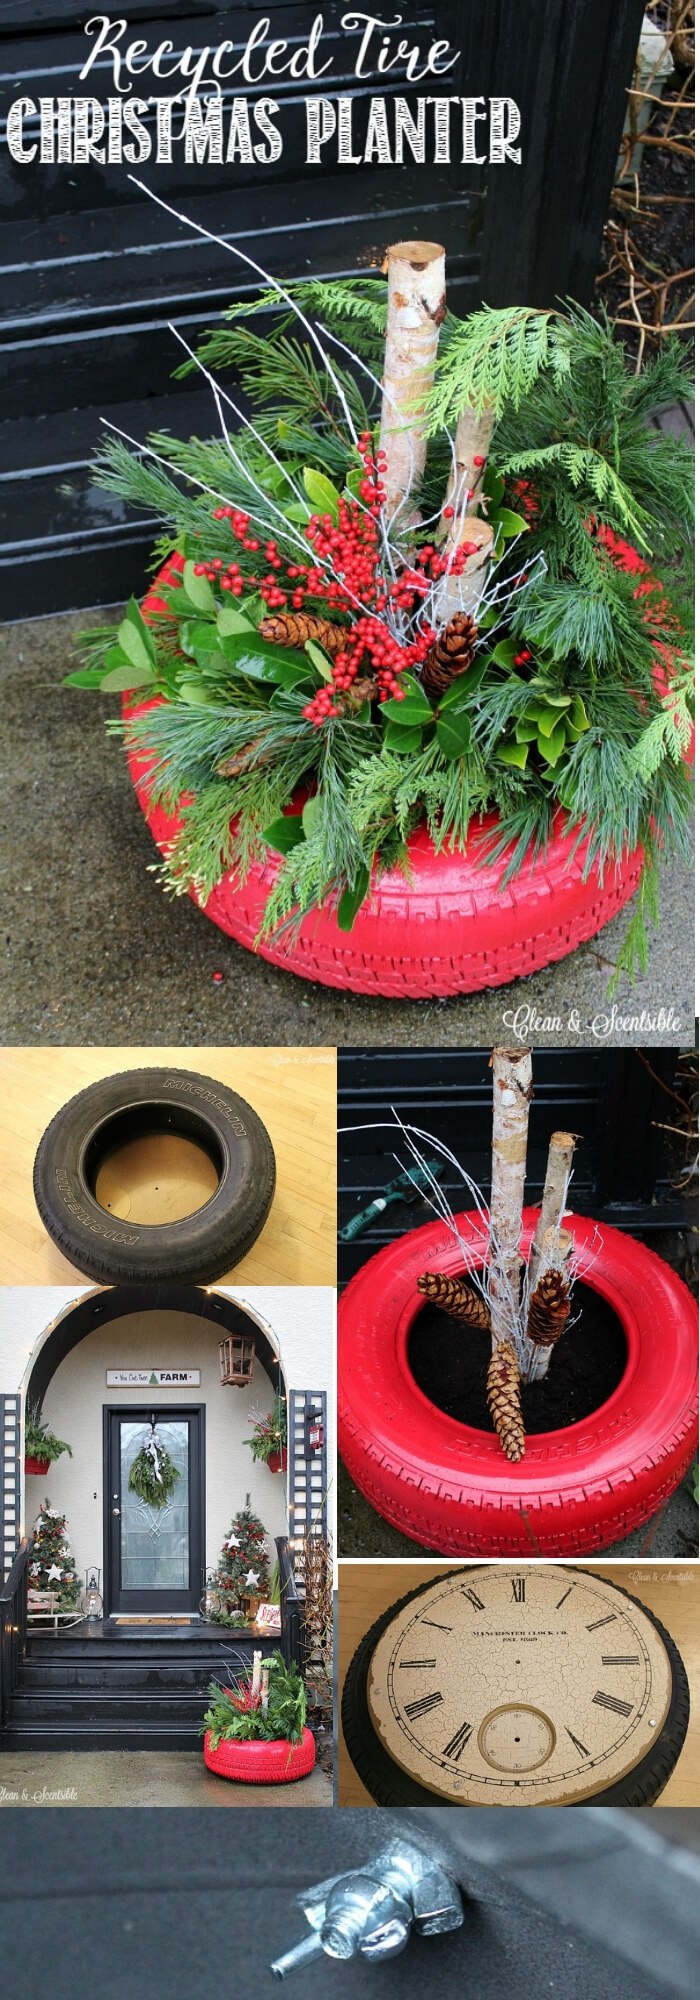 13 Best Recycled Tire Christmas Decoration Ideas For 2021